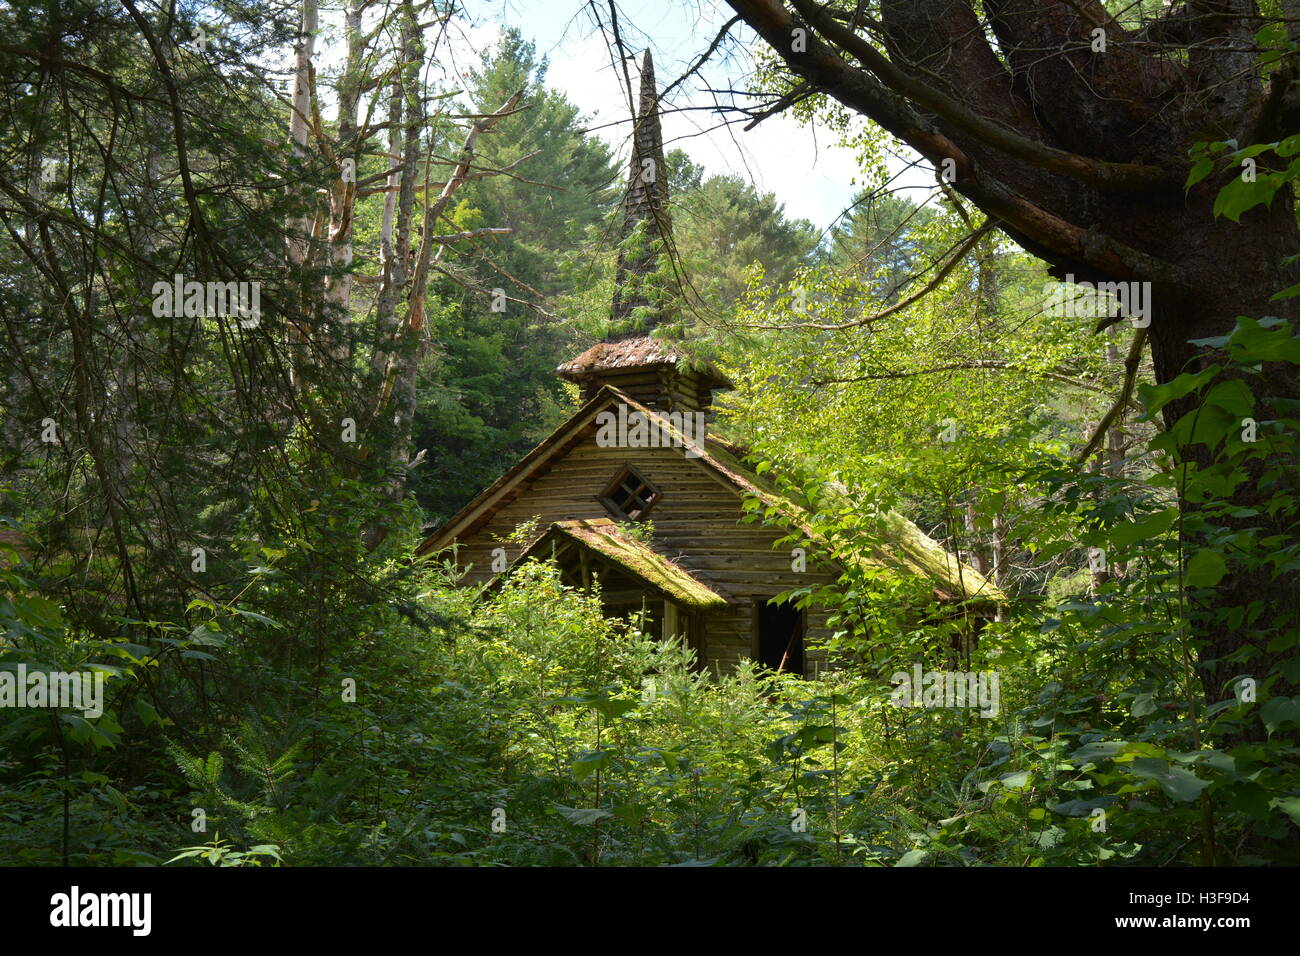 Abandoned Wooden Theme Park Church In The Woods Stock Photo Alamy